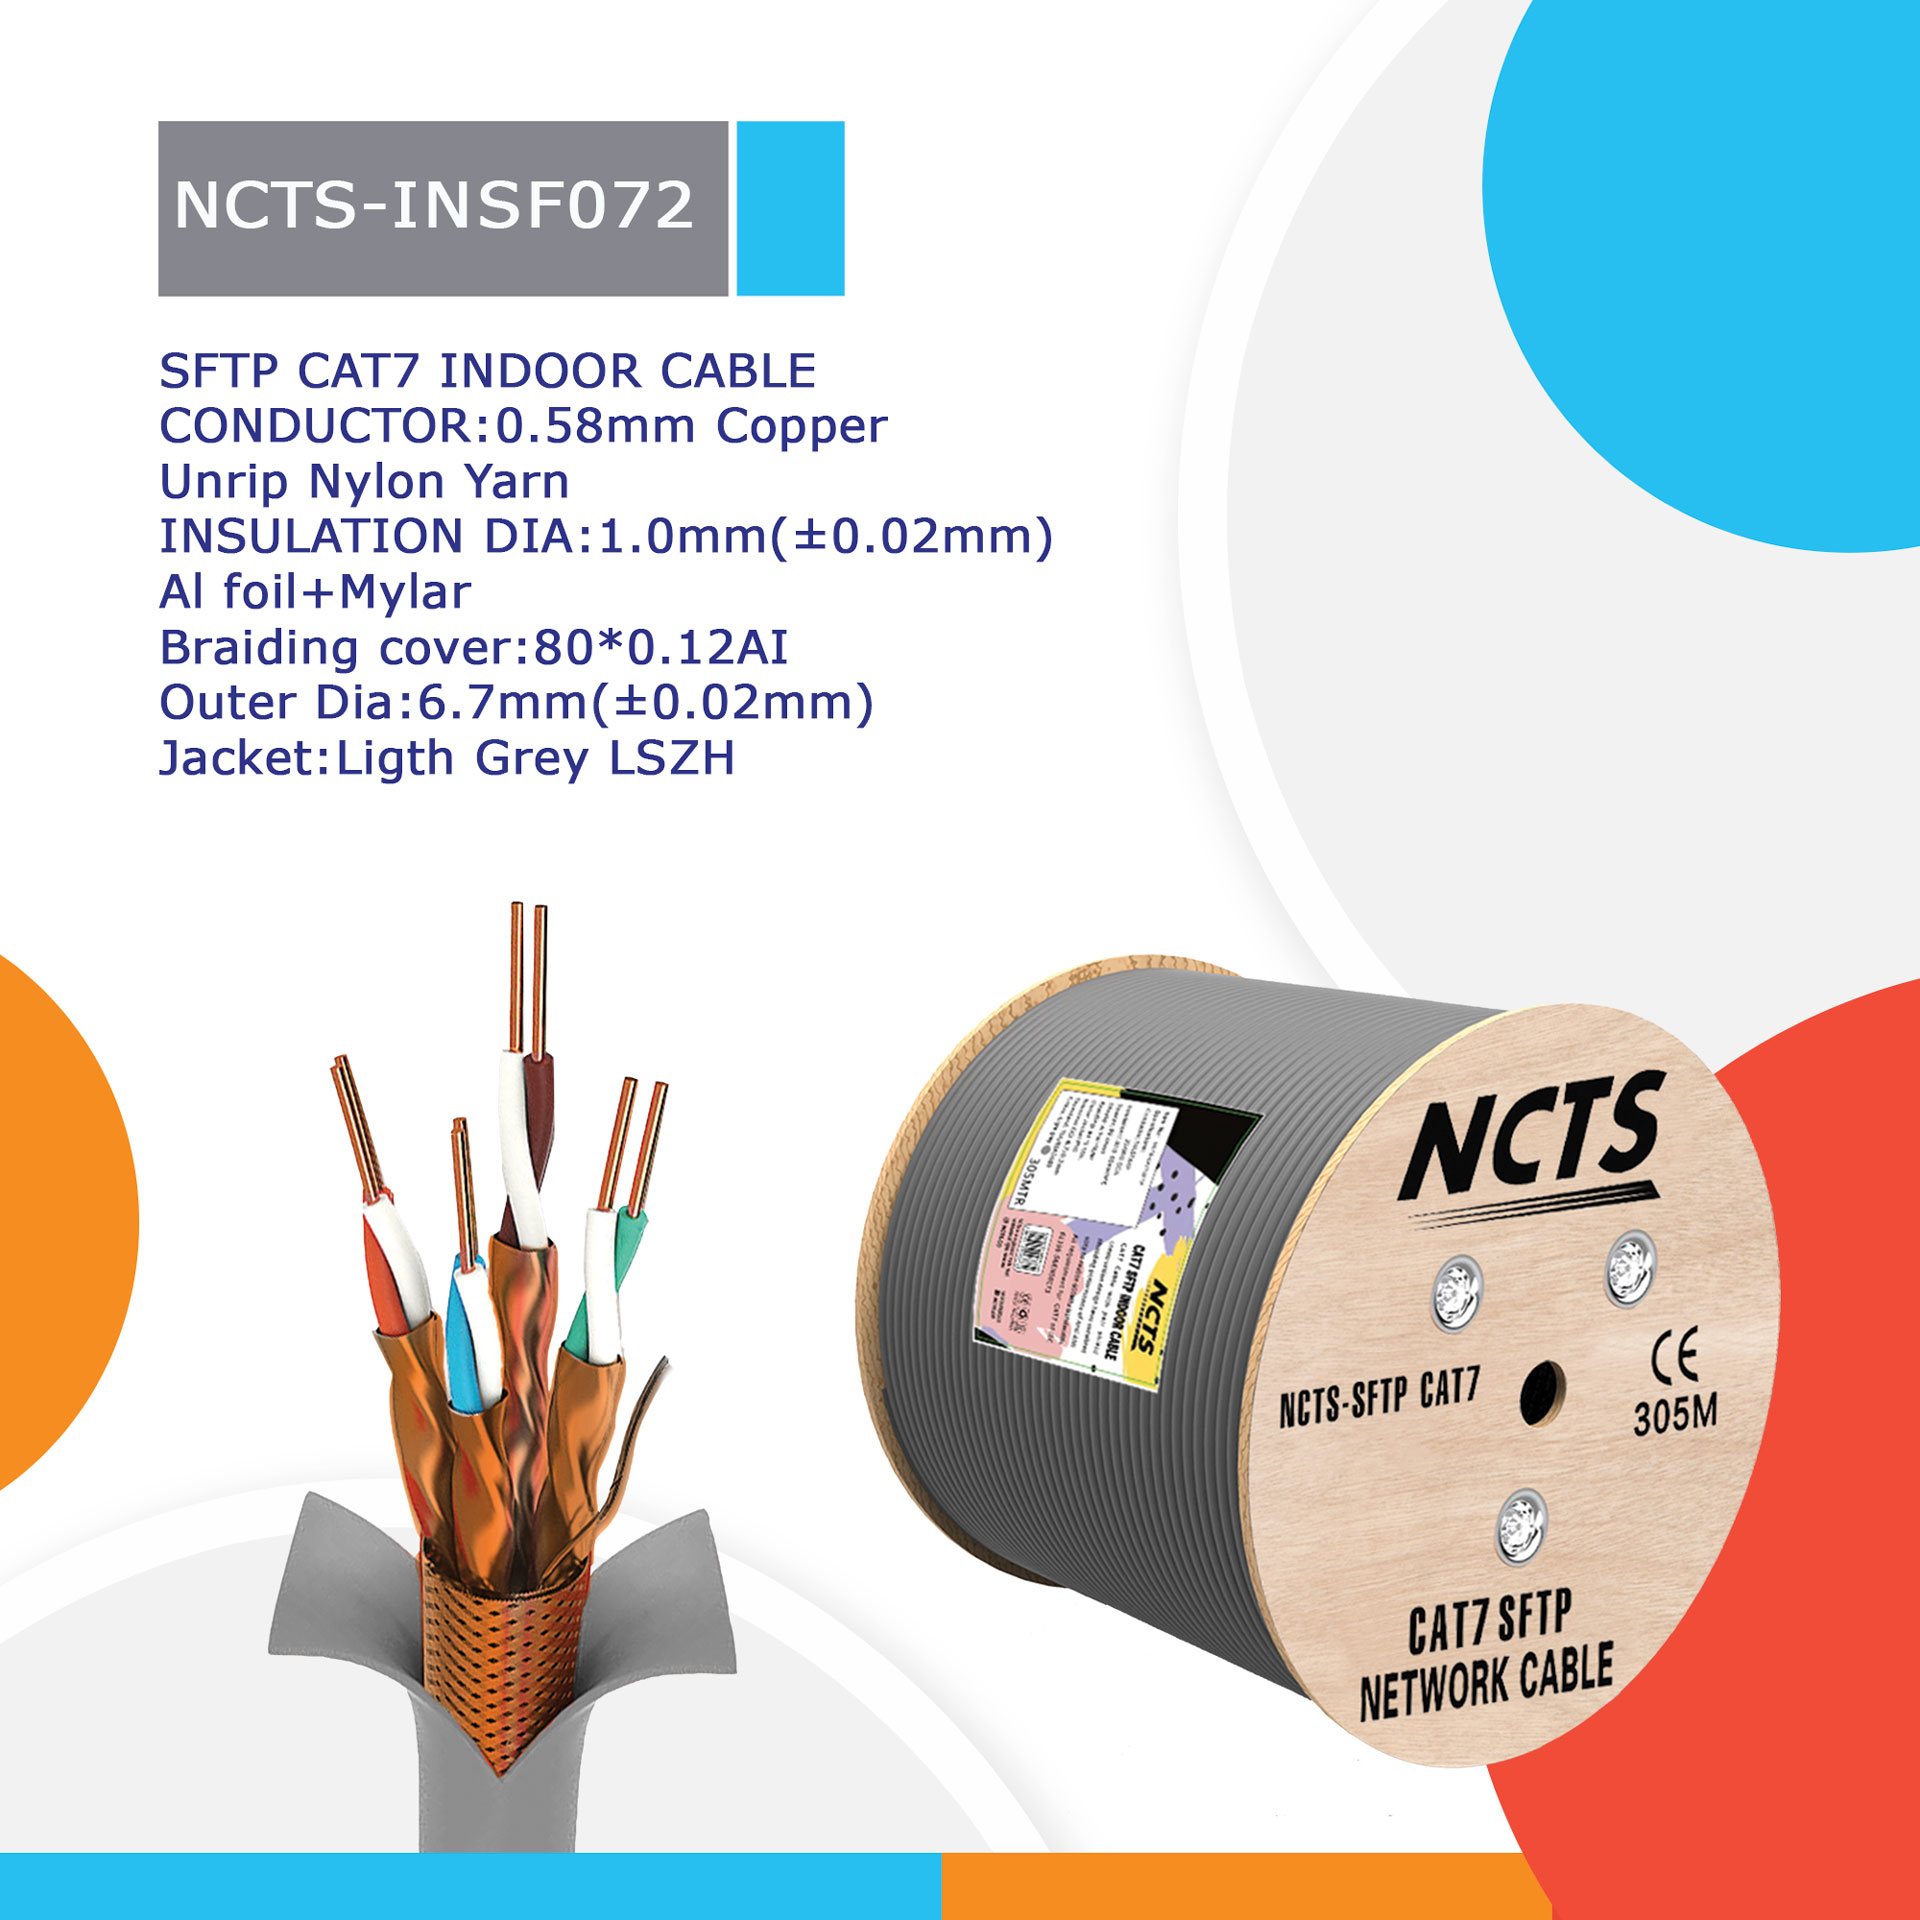 NCTS-INSF072